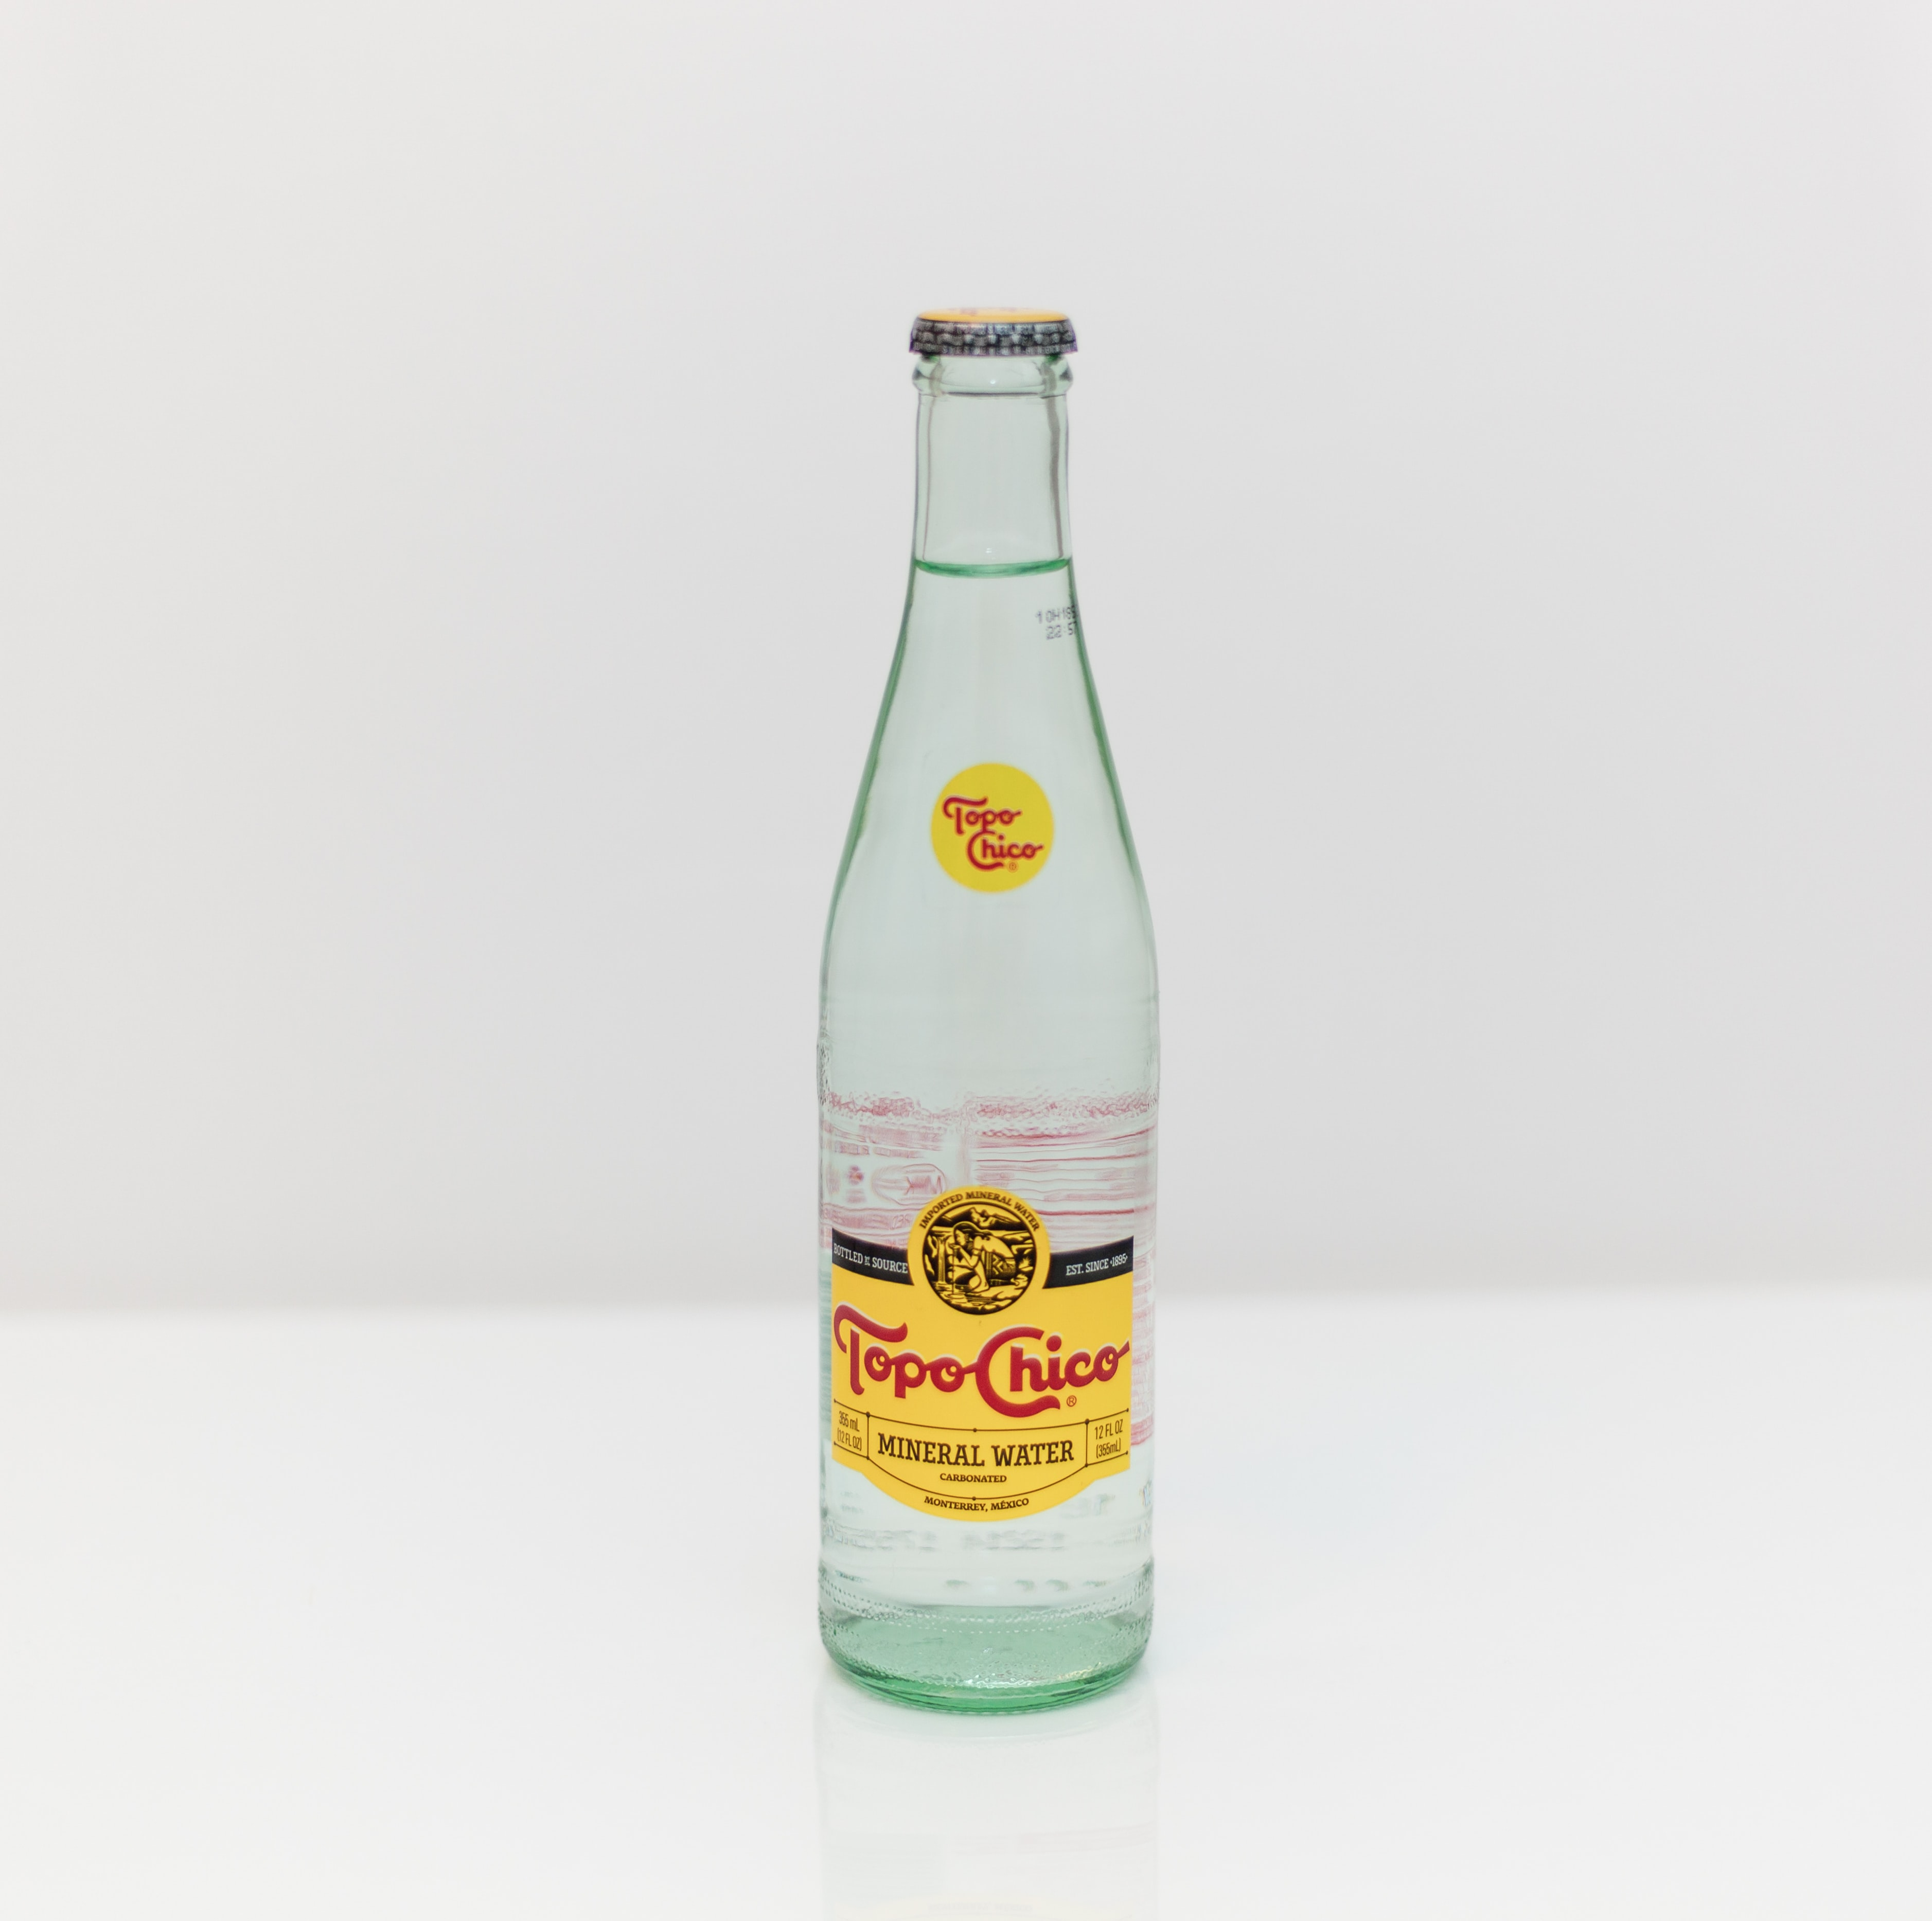 Topo Chico bottle on white surface